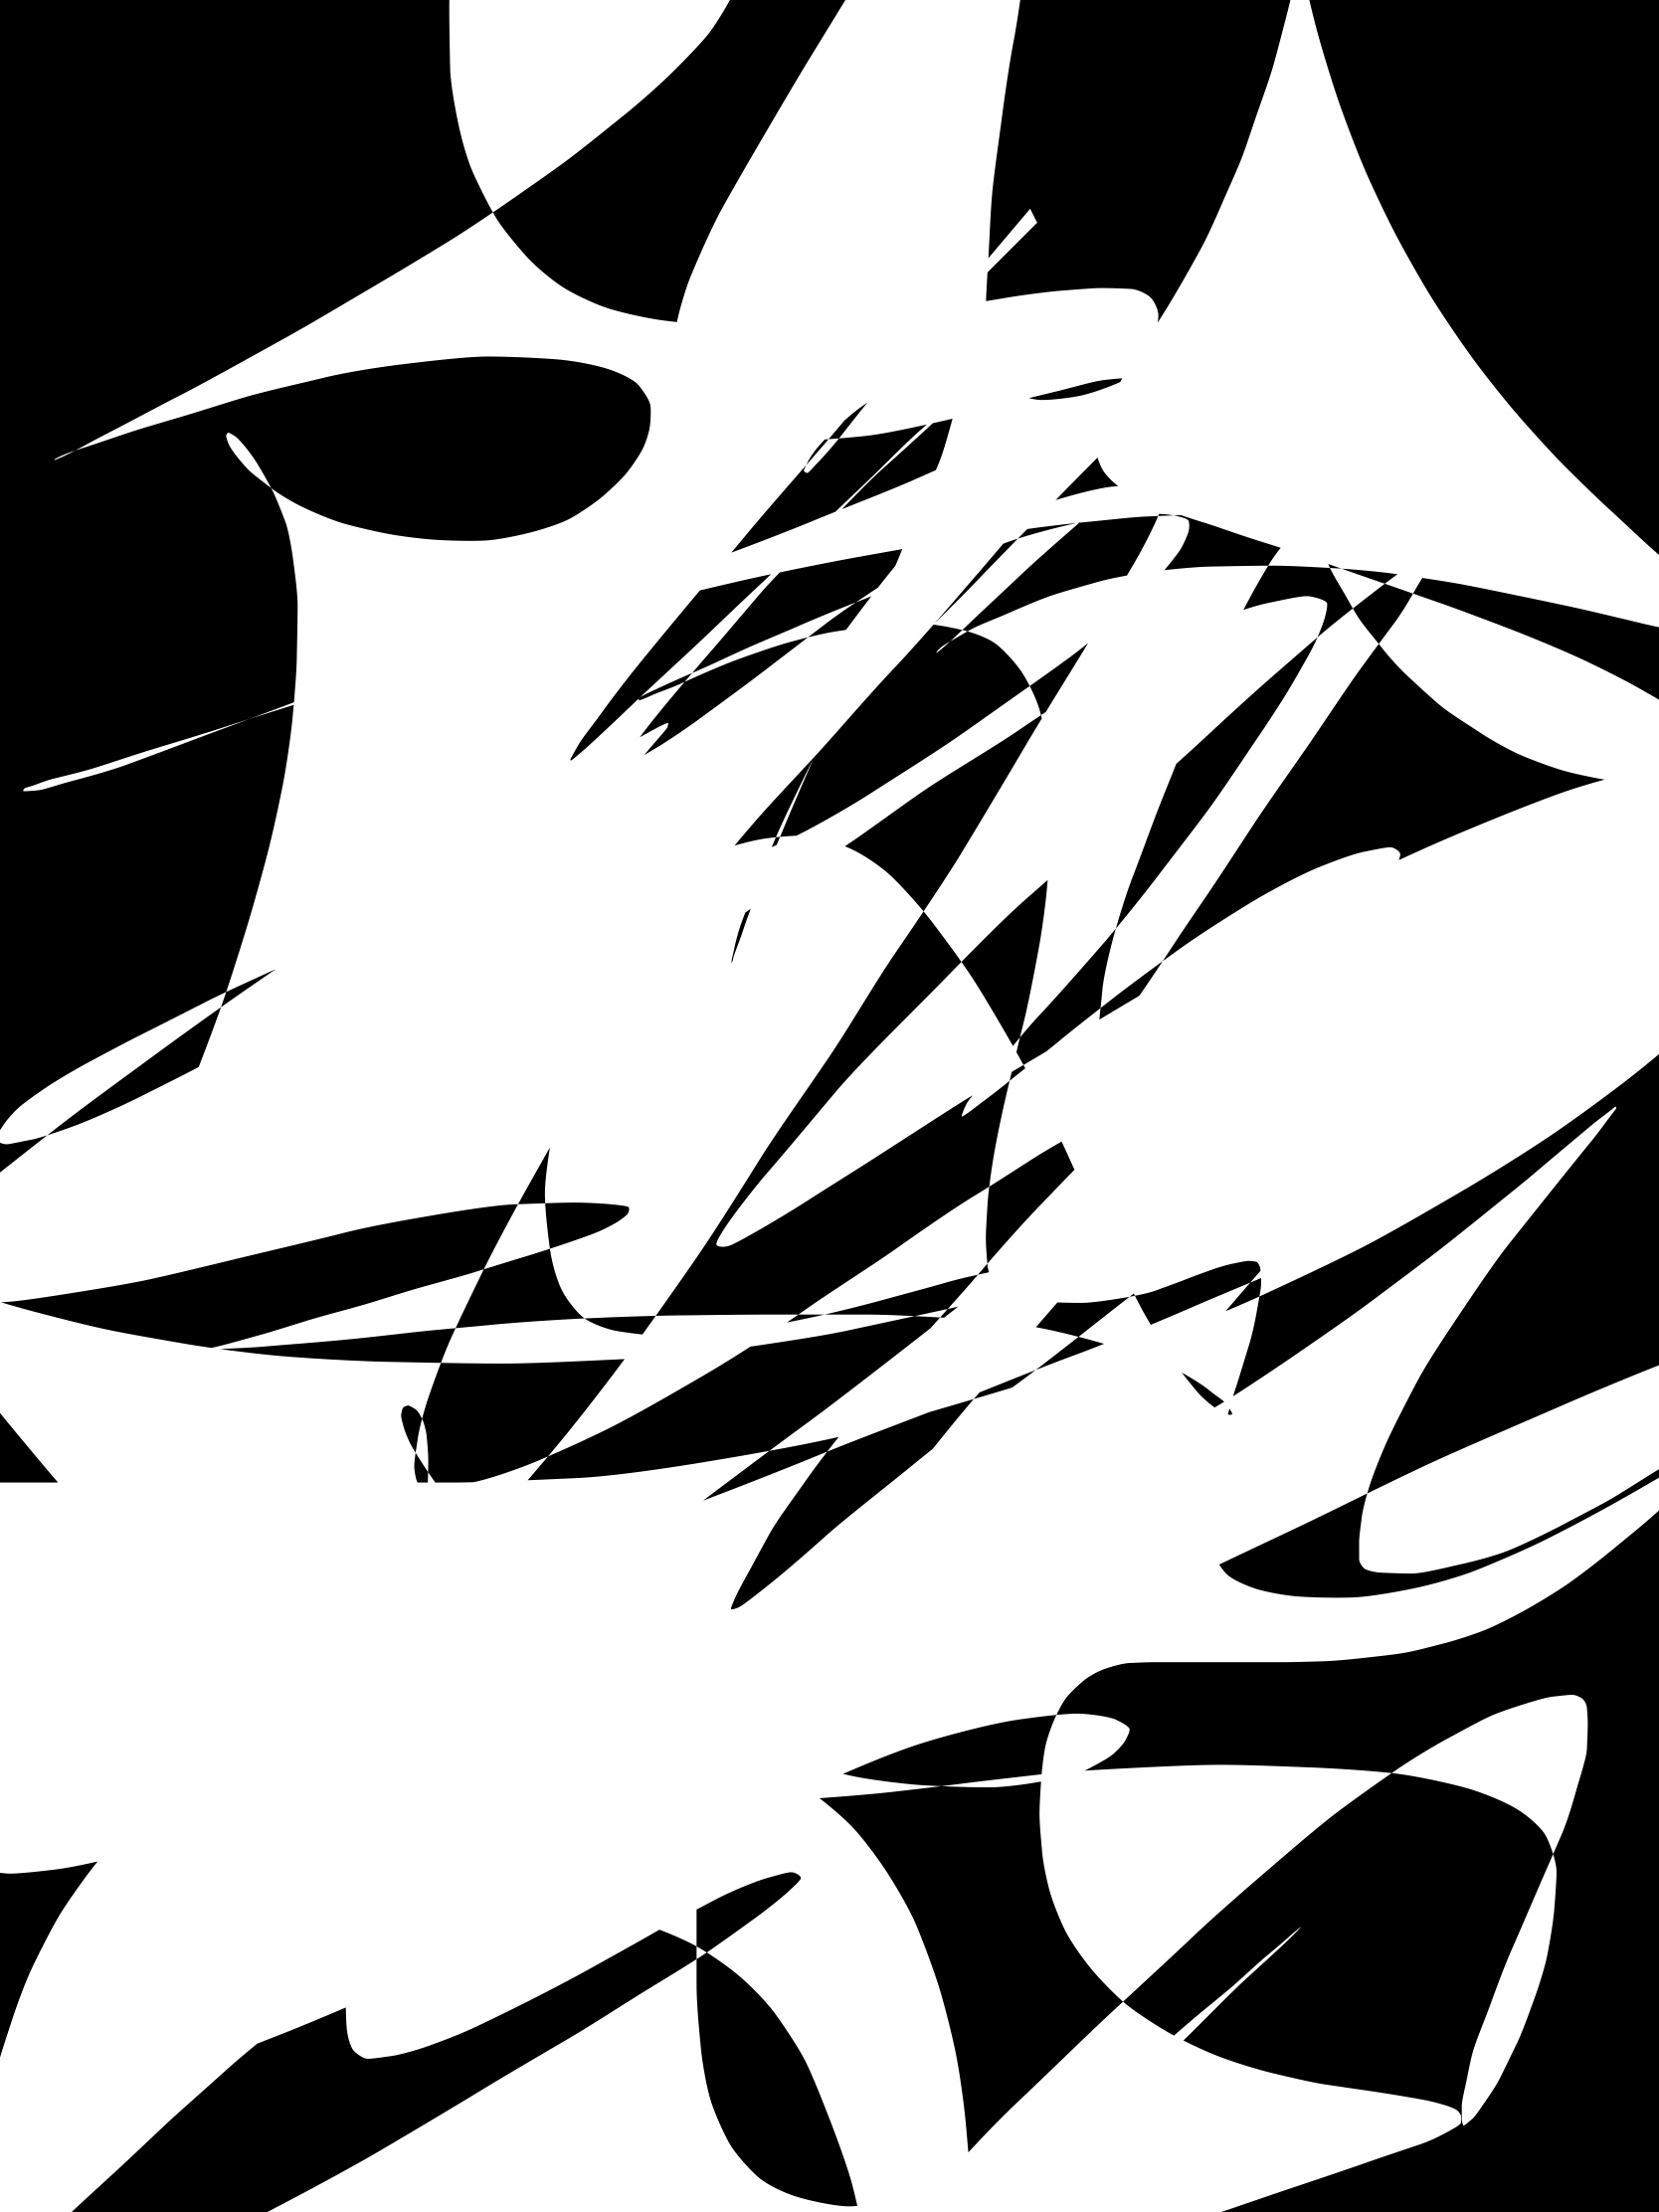 Black white abstract ERIC KIM